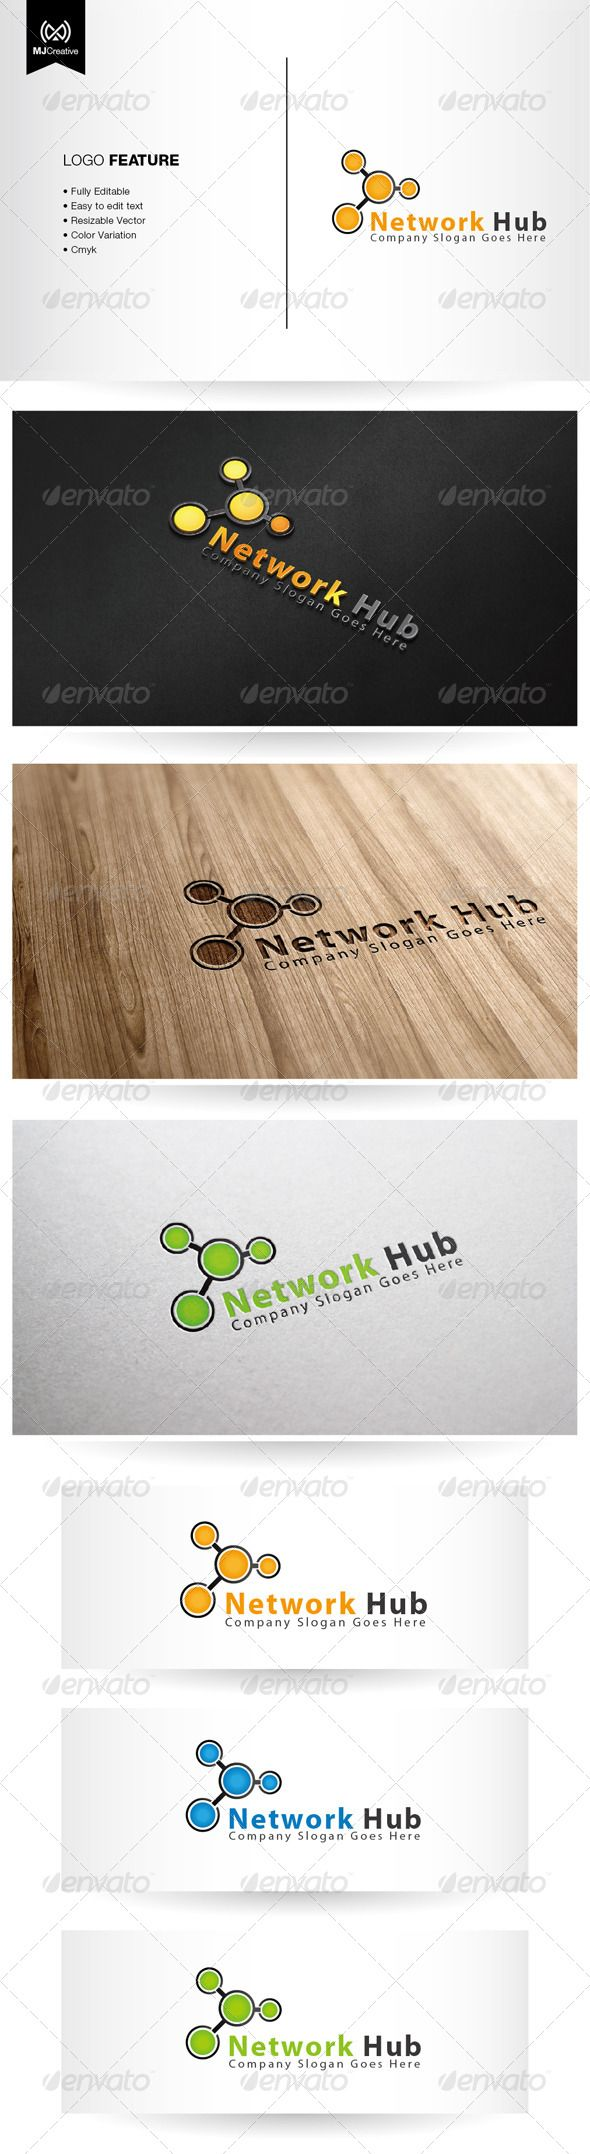 17 best images about logo templates logos business network hub logo